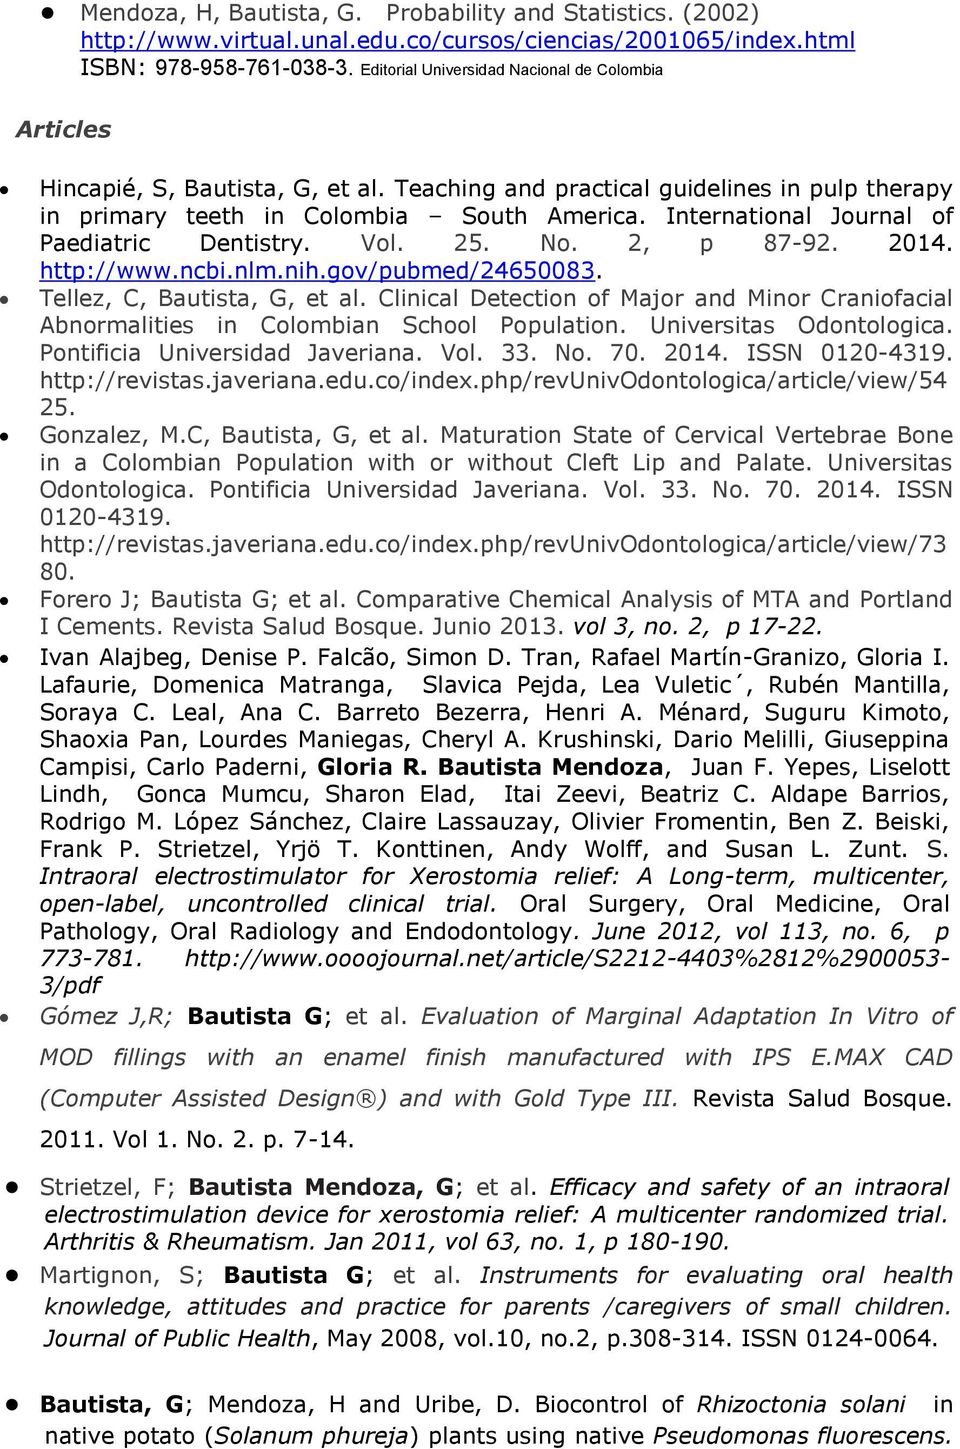 International Journal of Paediatric Dentistry. Vol. 25. No. 2, p 87-92. 2014. http://www.ncbi.nlm.nih.gov/pubmed/24650083. Tellez, C, Bautista, G, et al.